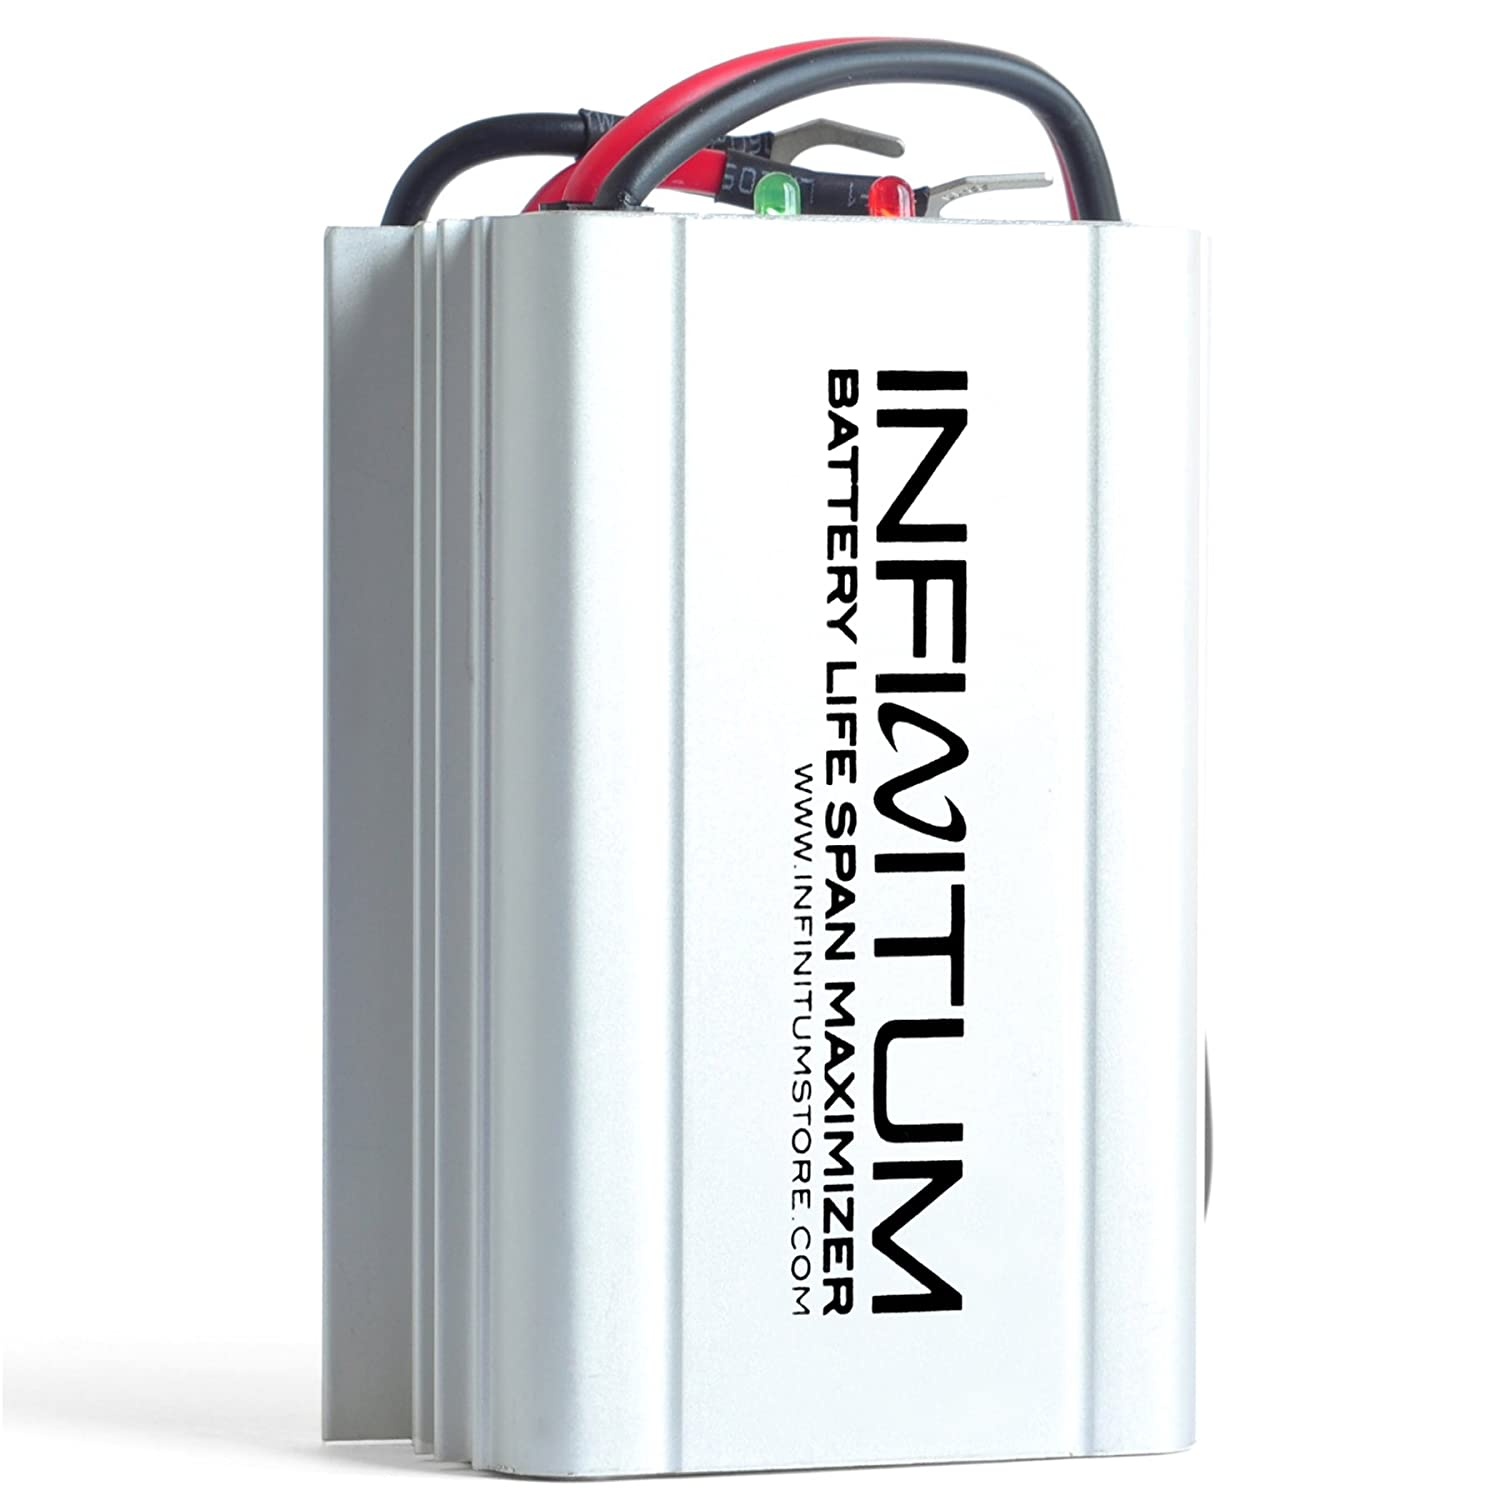 Infinitum 24v Desulfator Battery Life Span Optimizer Circuit Images Frompo Automotive